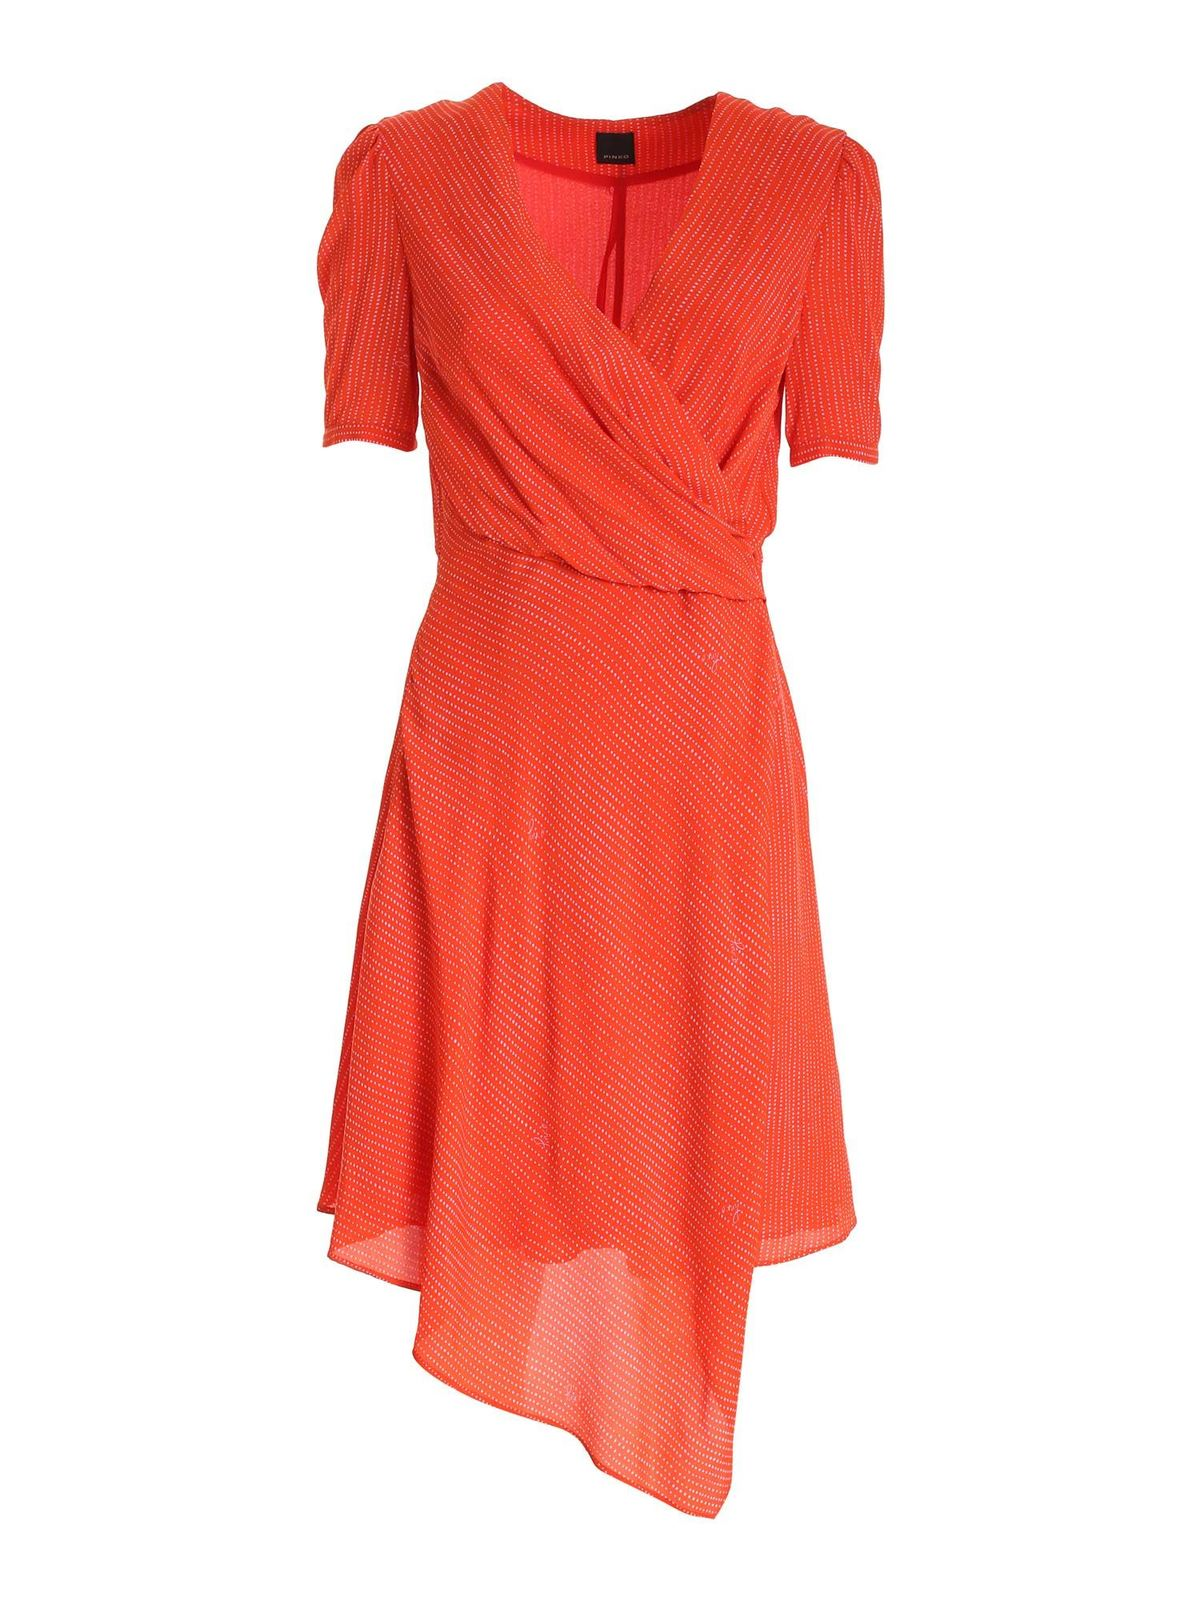 Pinko MAGIO DRESS IN CORAL RED